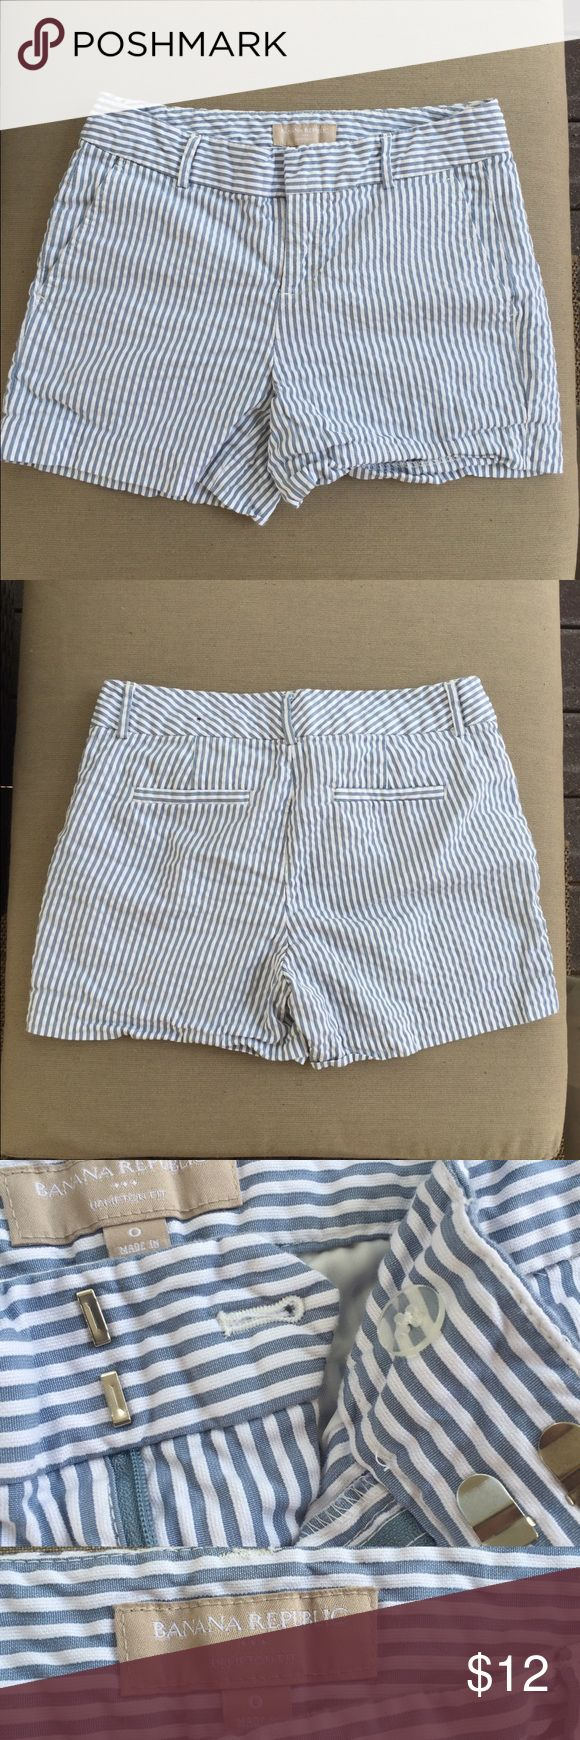 Banana Republic Hampton Seersucker Shorts These shorts are super cute for a summer's day! The front has a hidden zipper and front closing clasp with a button. These shorts have been worn several times so there are signs of wear. Still functional however. I just wish they still fit me :( color is light blue with white pinstripes. Banana Republic Shorts